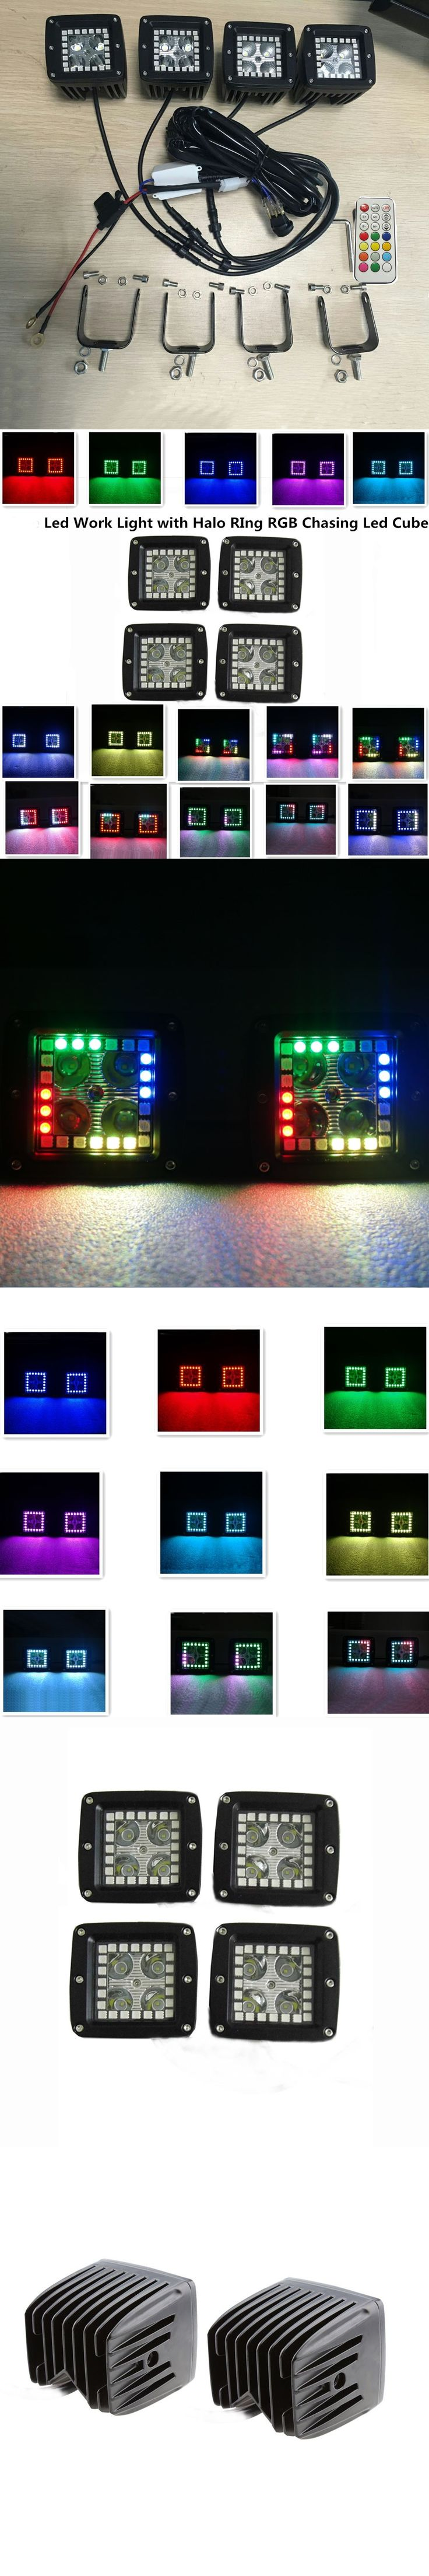 4pcs 16w halo ring angel eyes Spot Led Work Light Offroad 12 Solid Colors Changing RGBW free wire harness led fog light